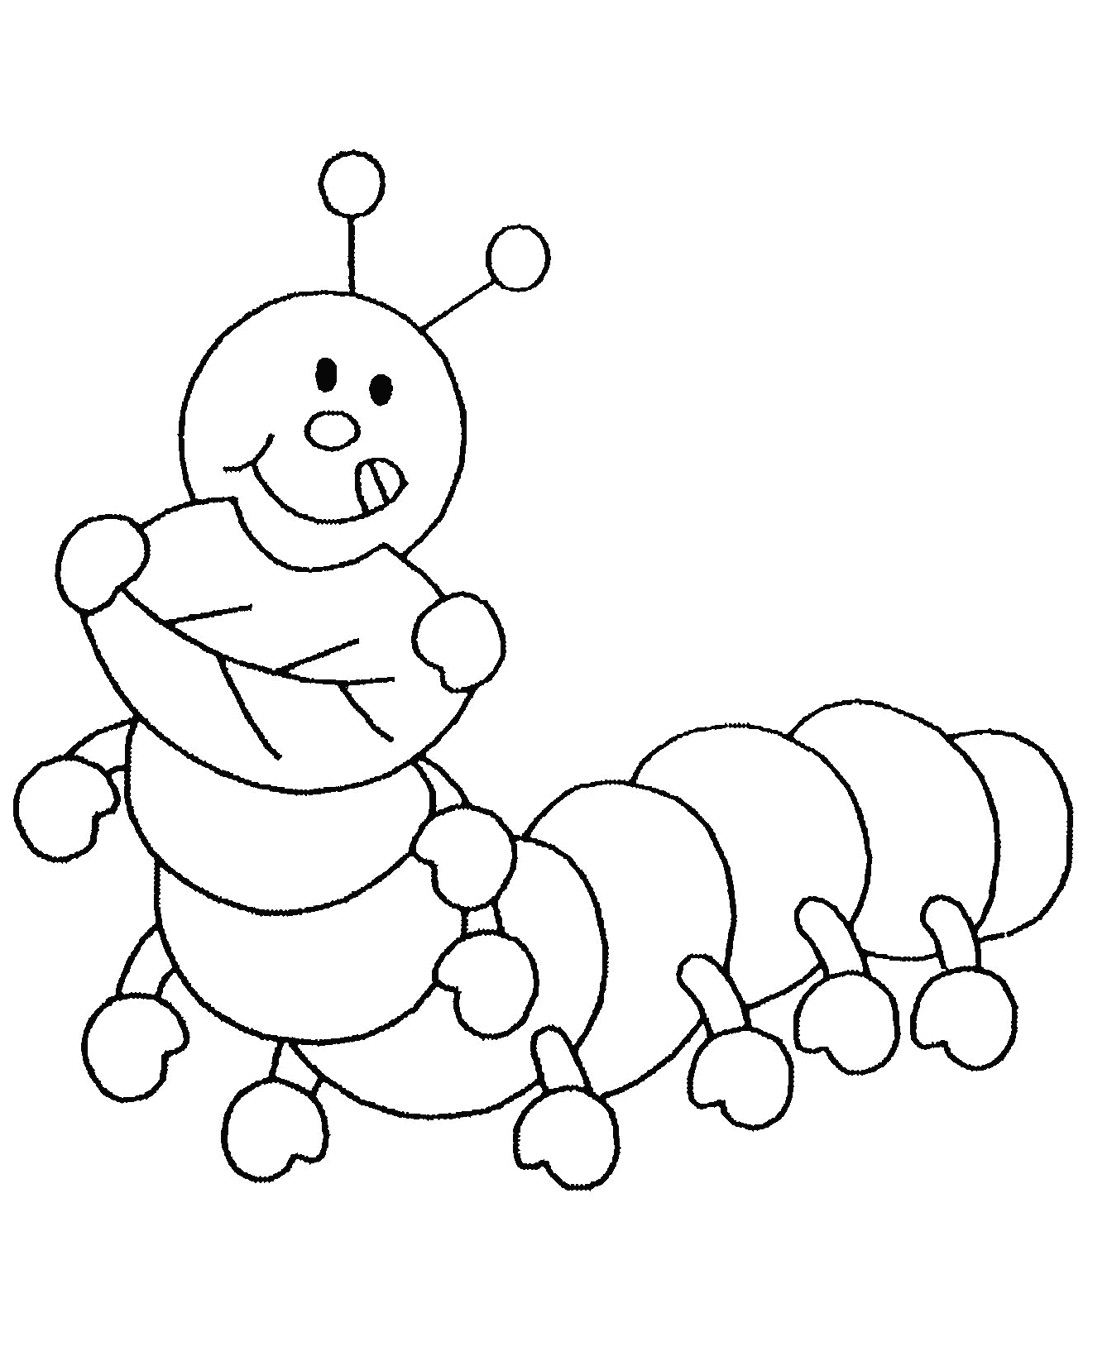 bug pictures to color insects for kids insects kids coloring pages bug color pictures to